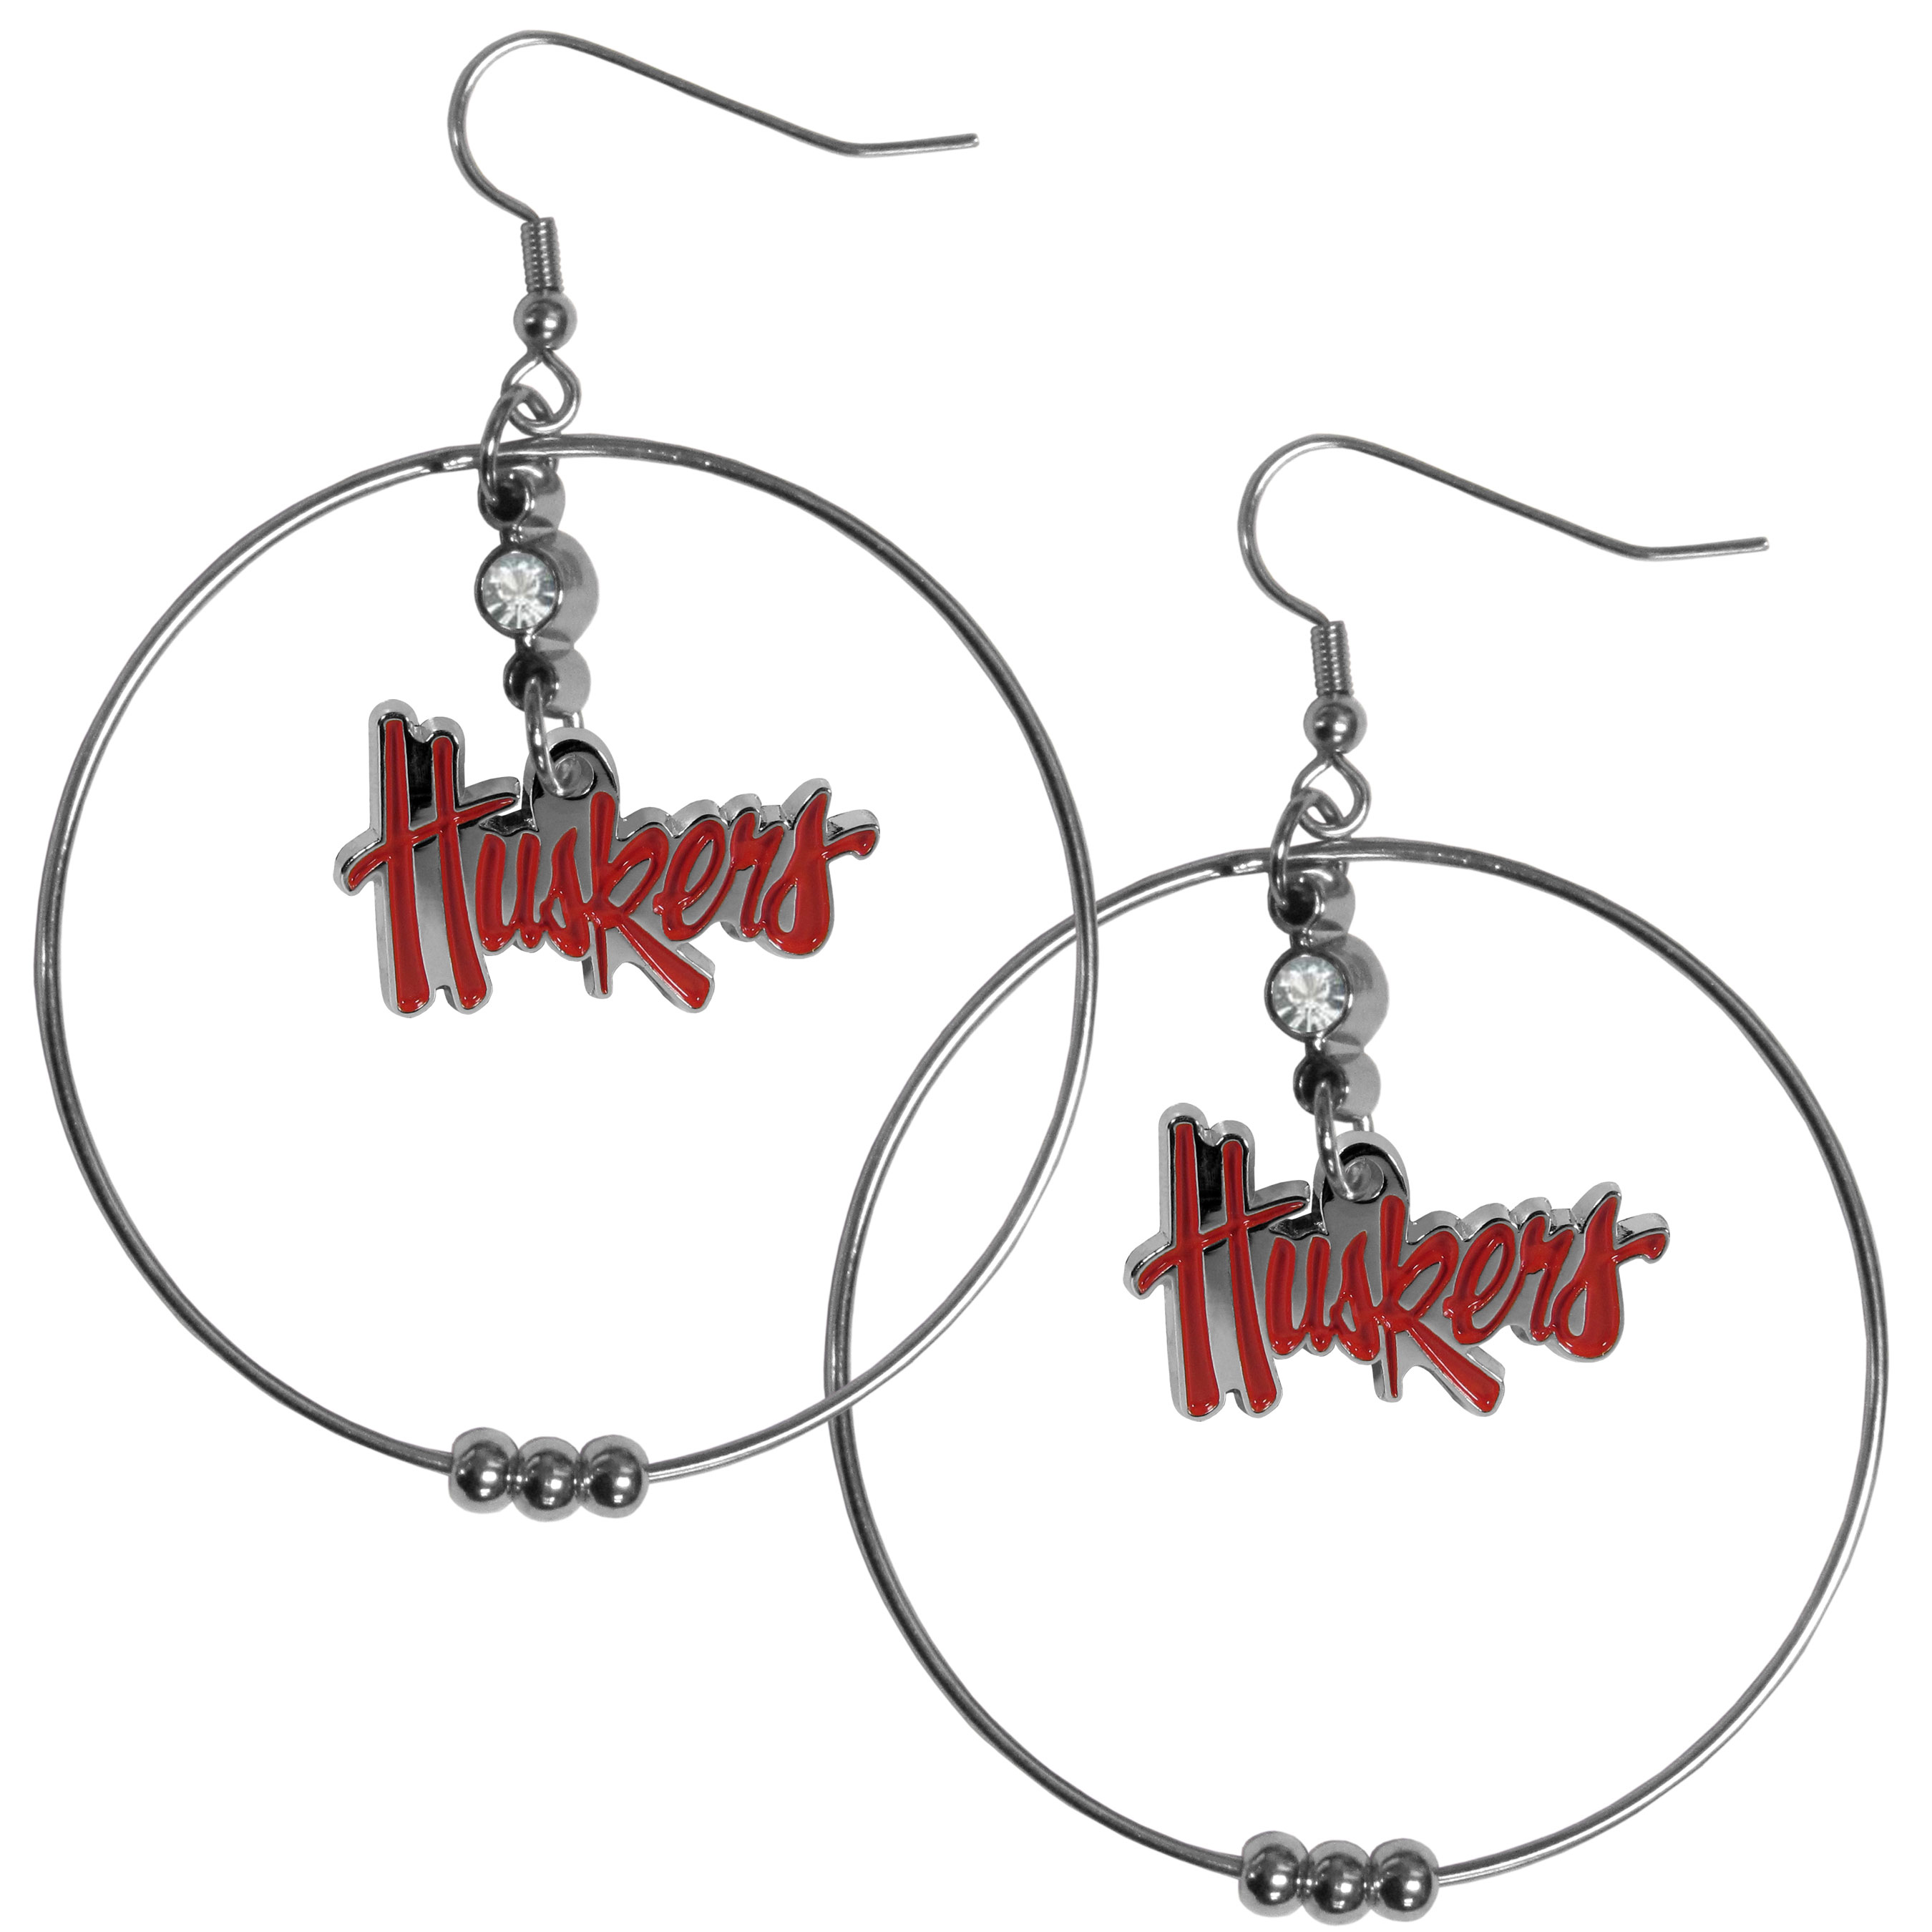 Nebraska Cornhuskers 2 Inch Hoop Earrings - Our large hoop earrings have a fully cast and enameled Nebraska Cornhuskers charm with enameled detail and a high polish nickel free chrome finish and rhinestone access. Hypoallergenic fishhook posts.